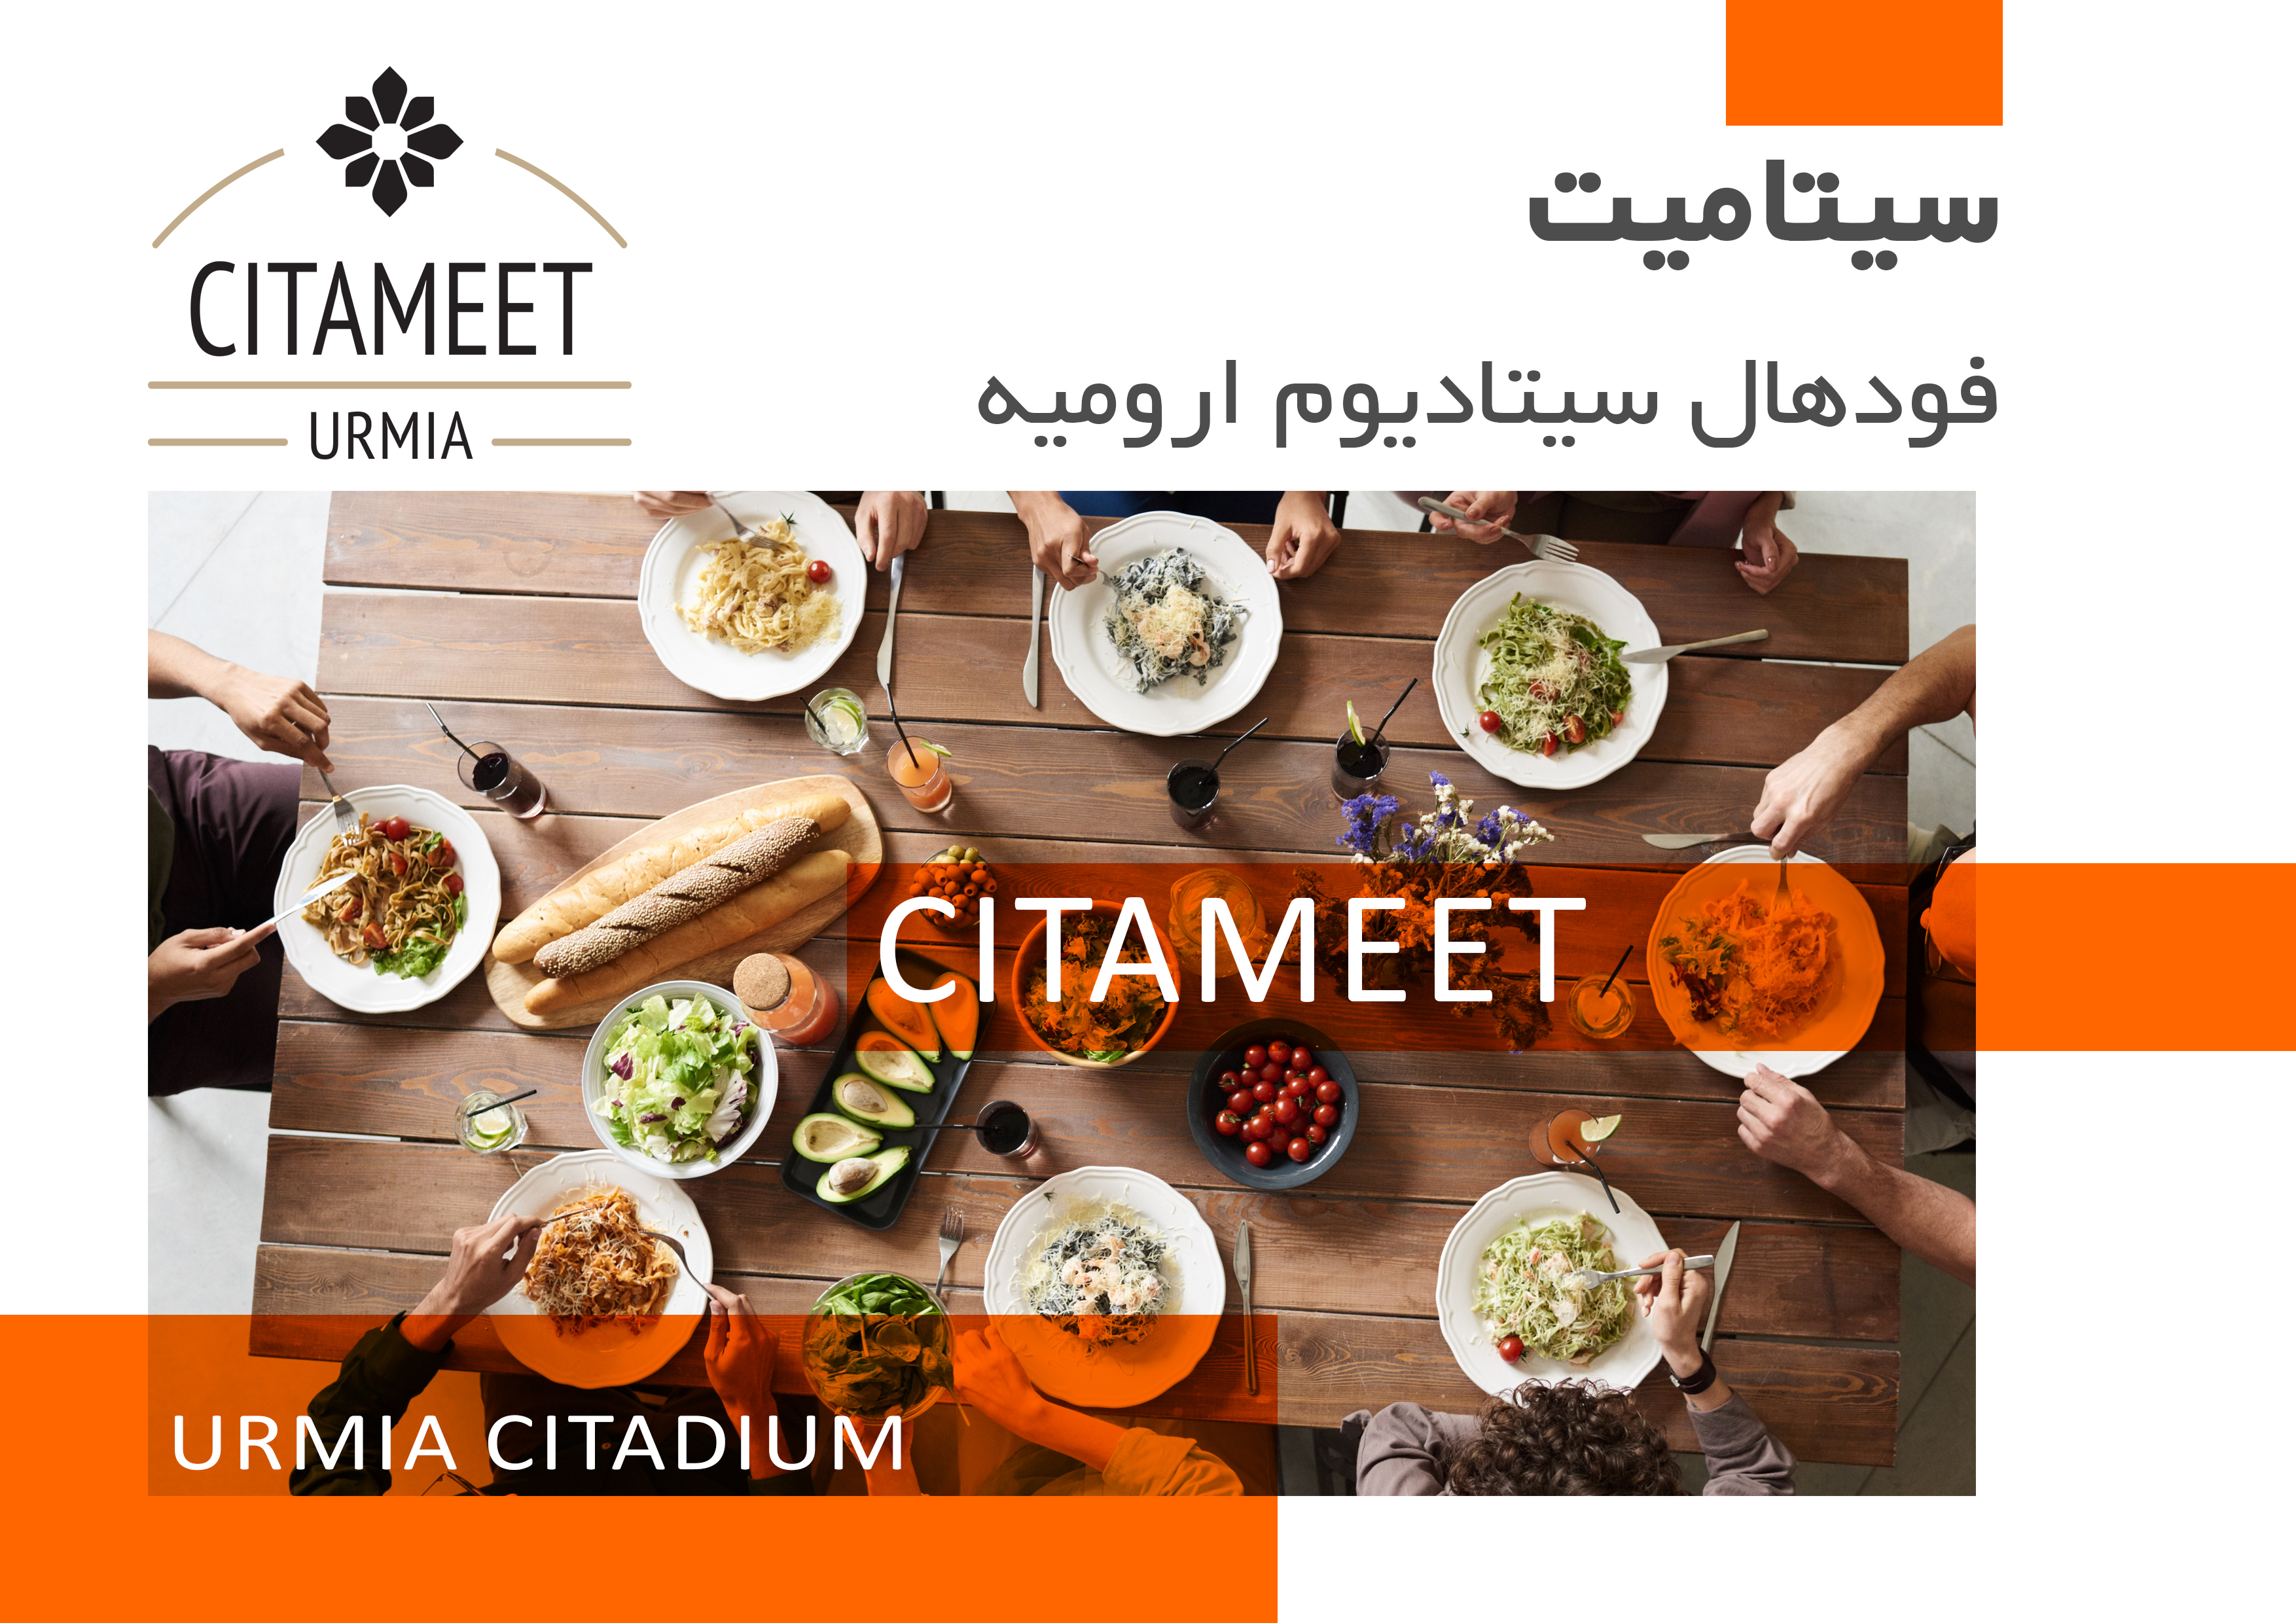 Citameet, the first food hall in the west of Iran at Urmia Citadium